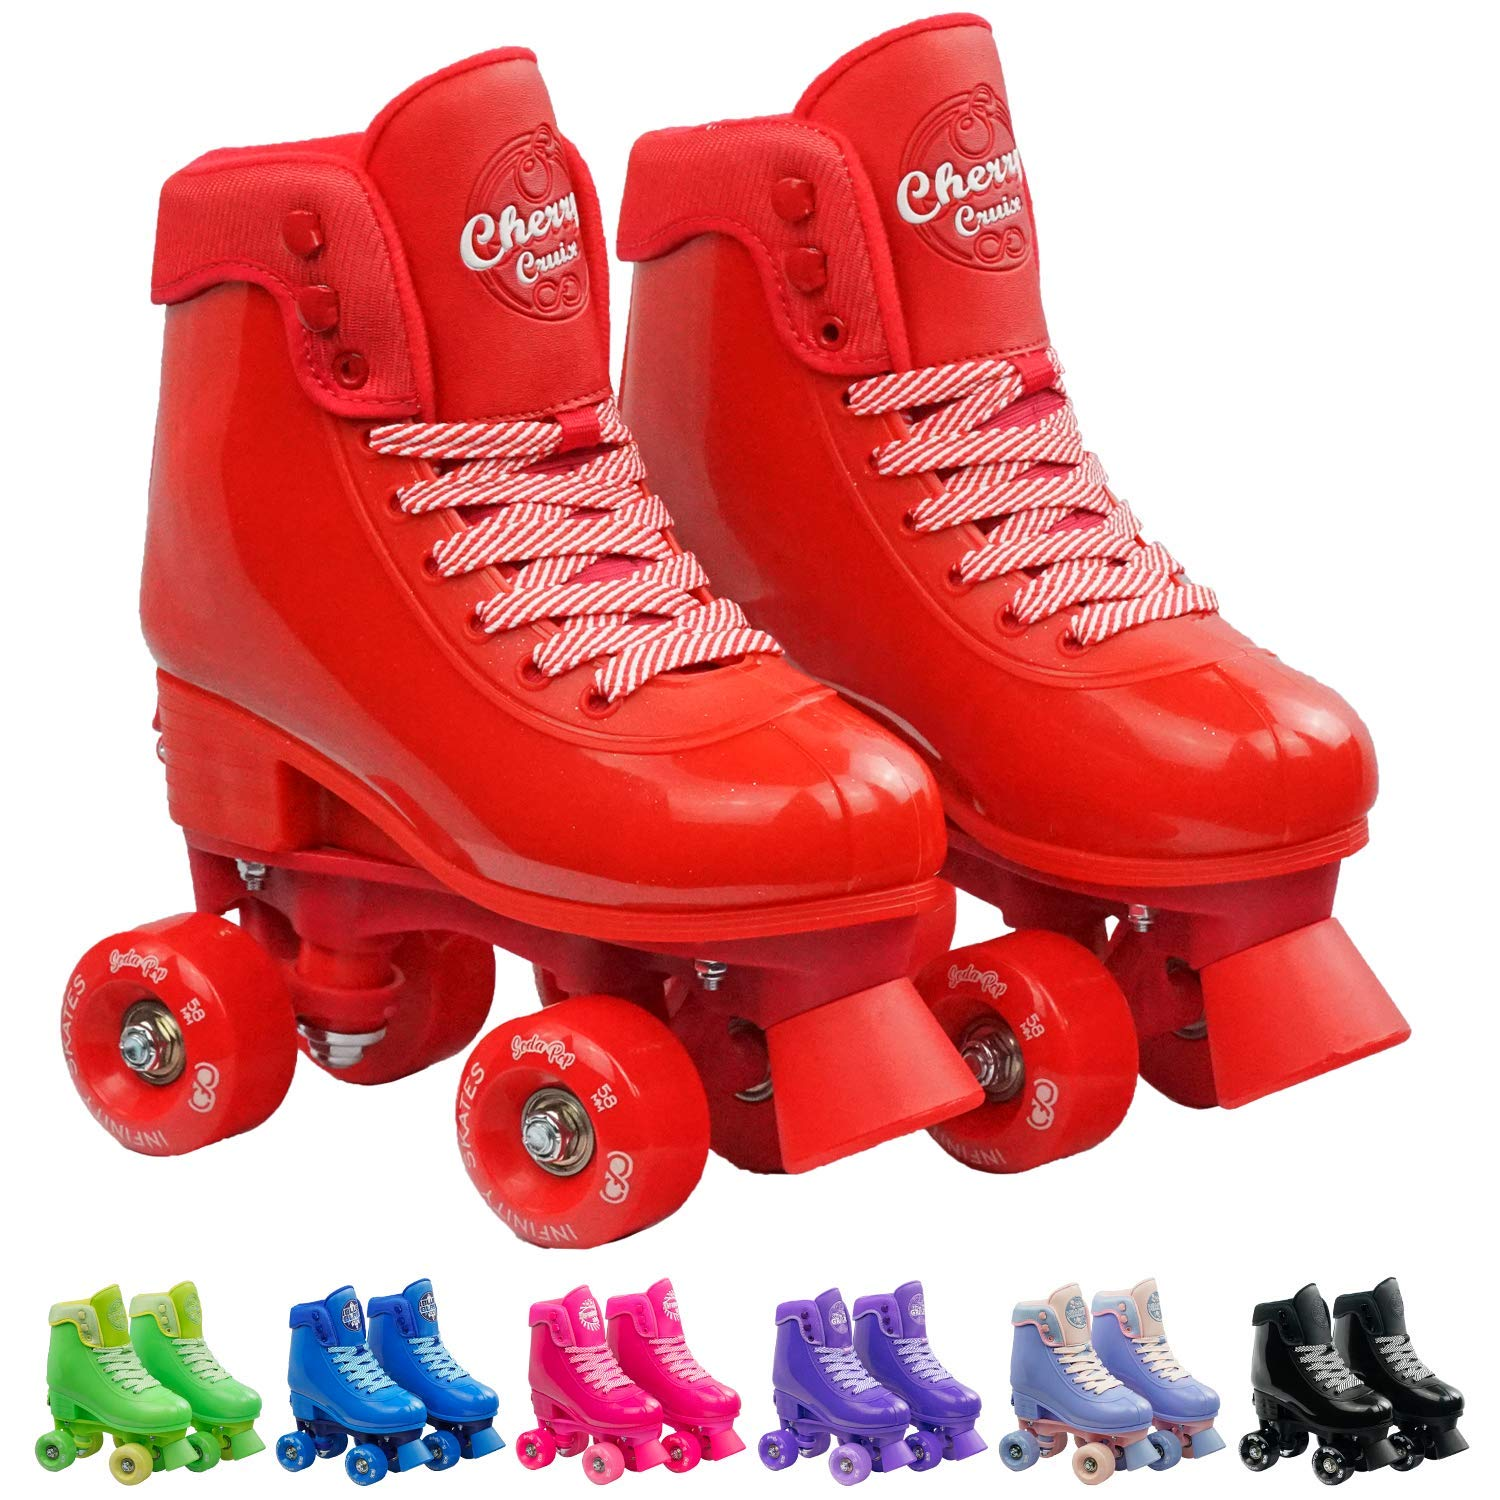 Infinity Skates Adjustable Roller Skates for Girls and Boys - Soda Pop Series (Red/Small)